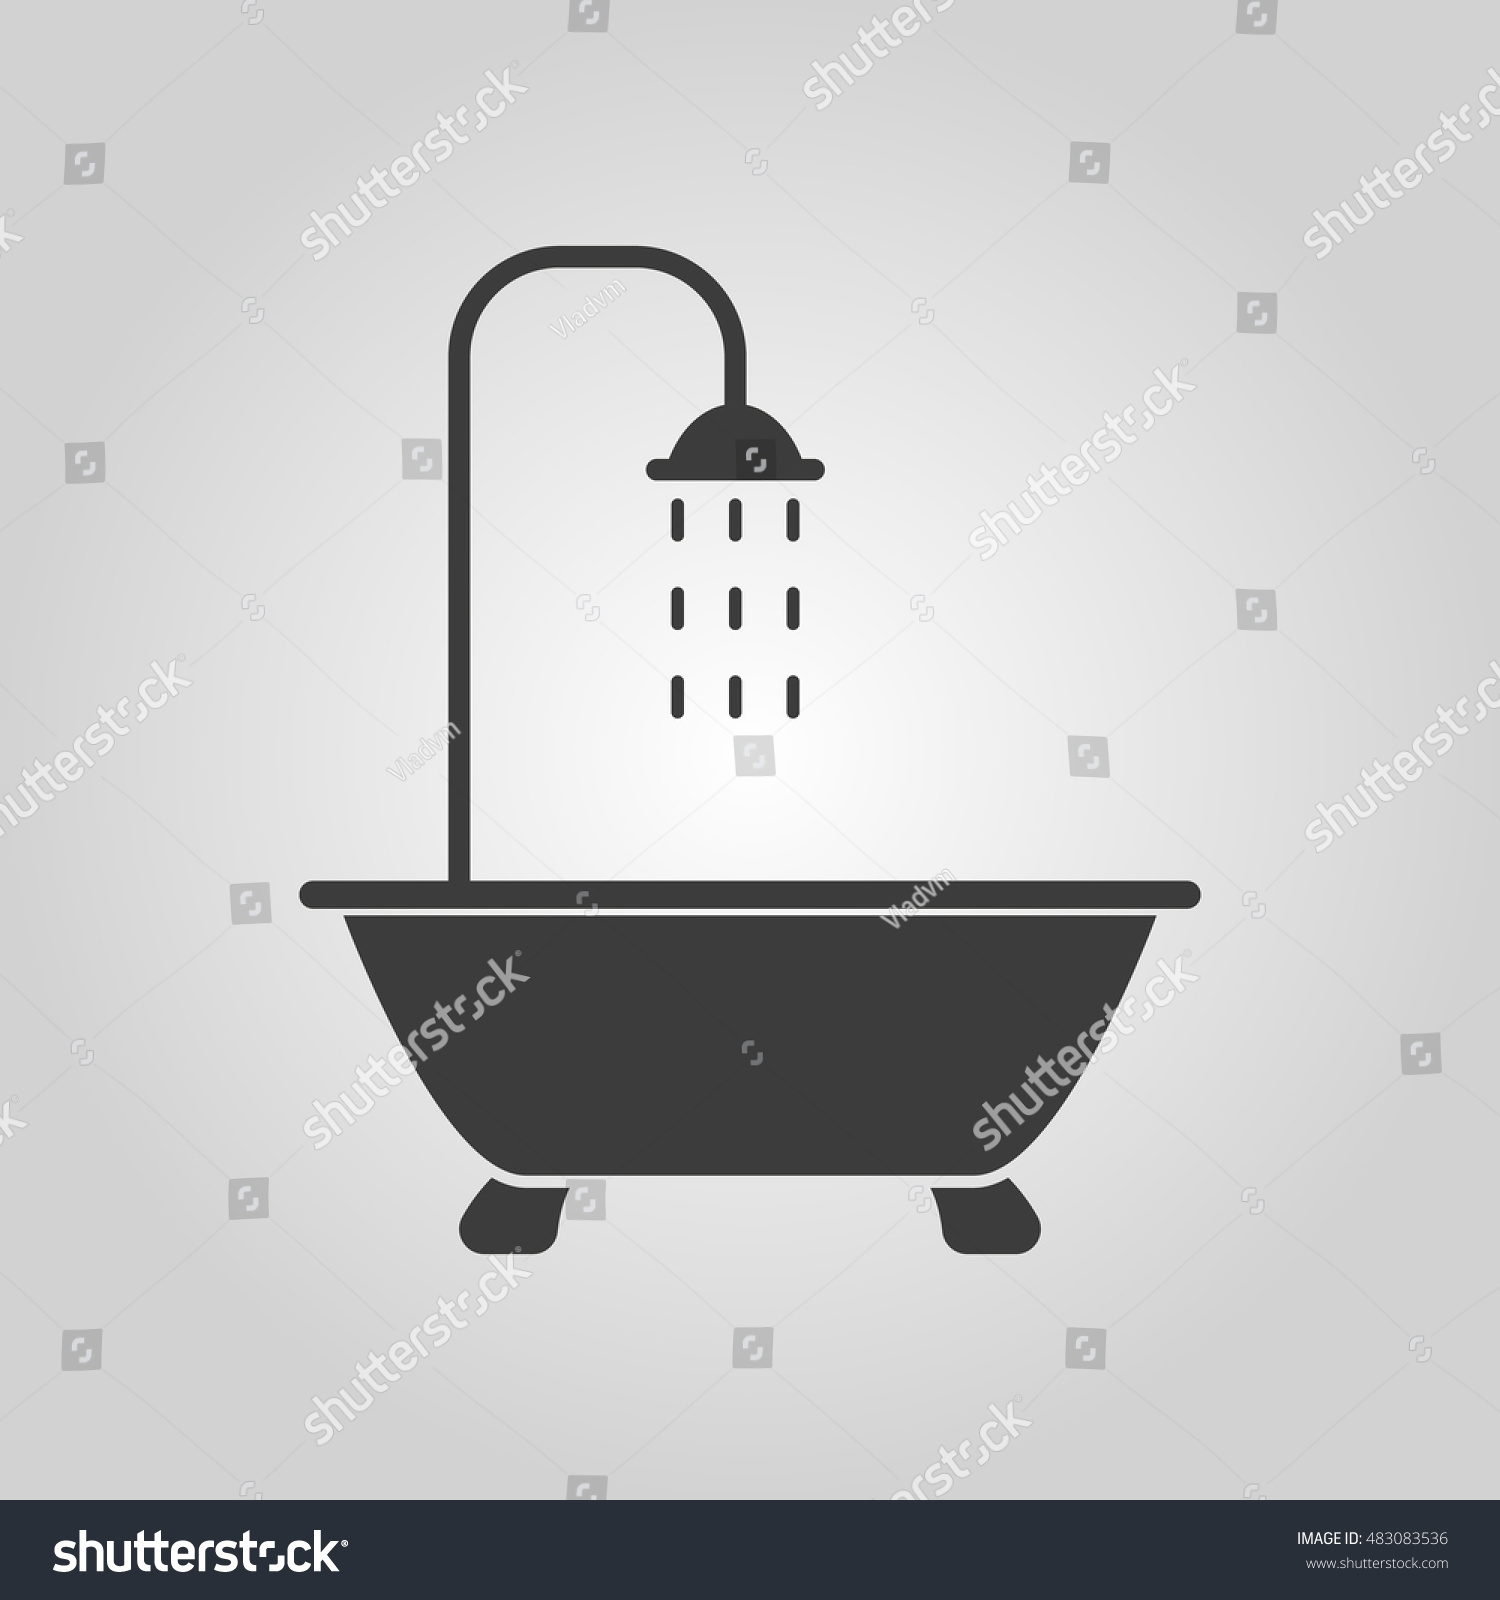 Bathroom Symbol Shower Icon Bathroom Symbol Flat Illustration Stock Illustration .